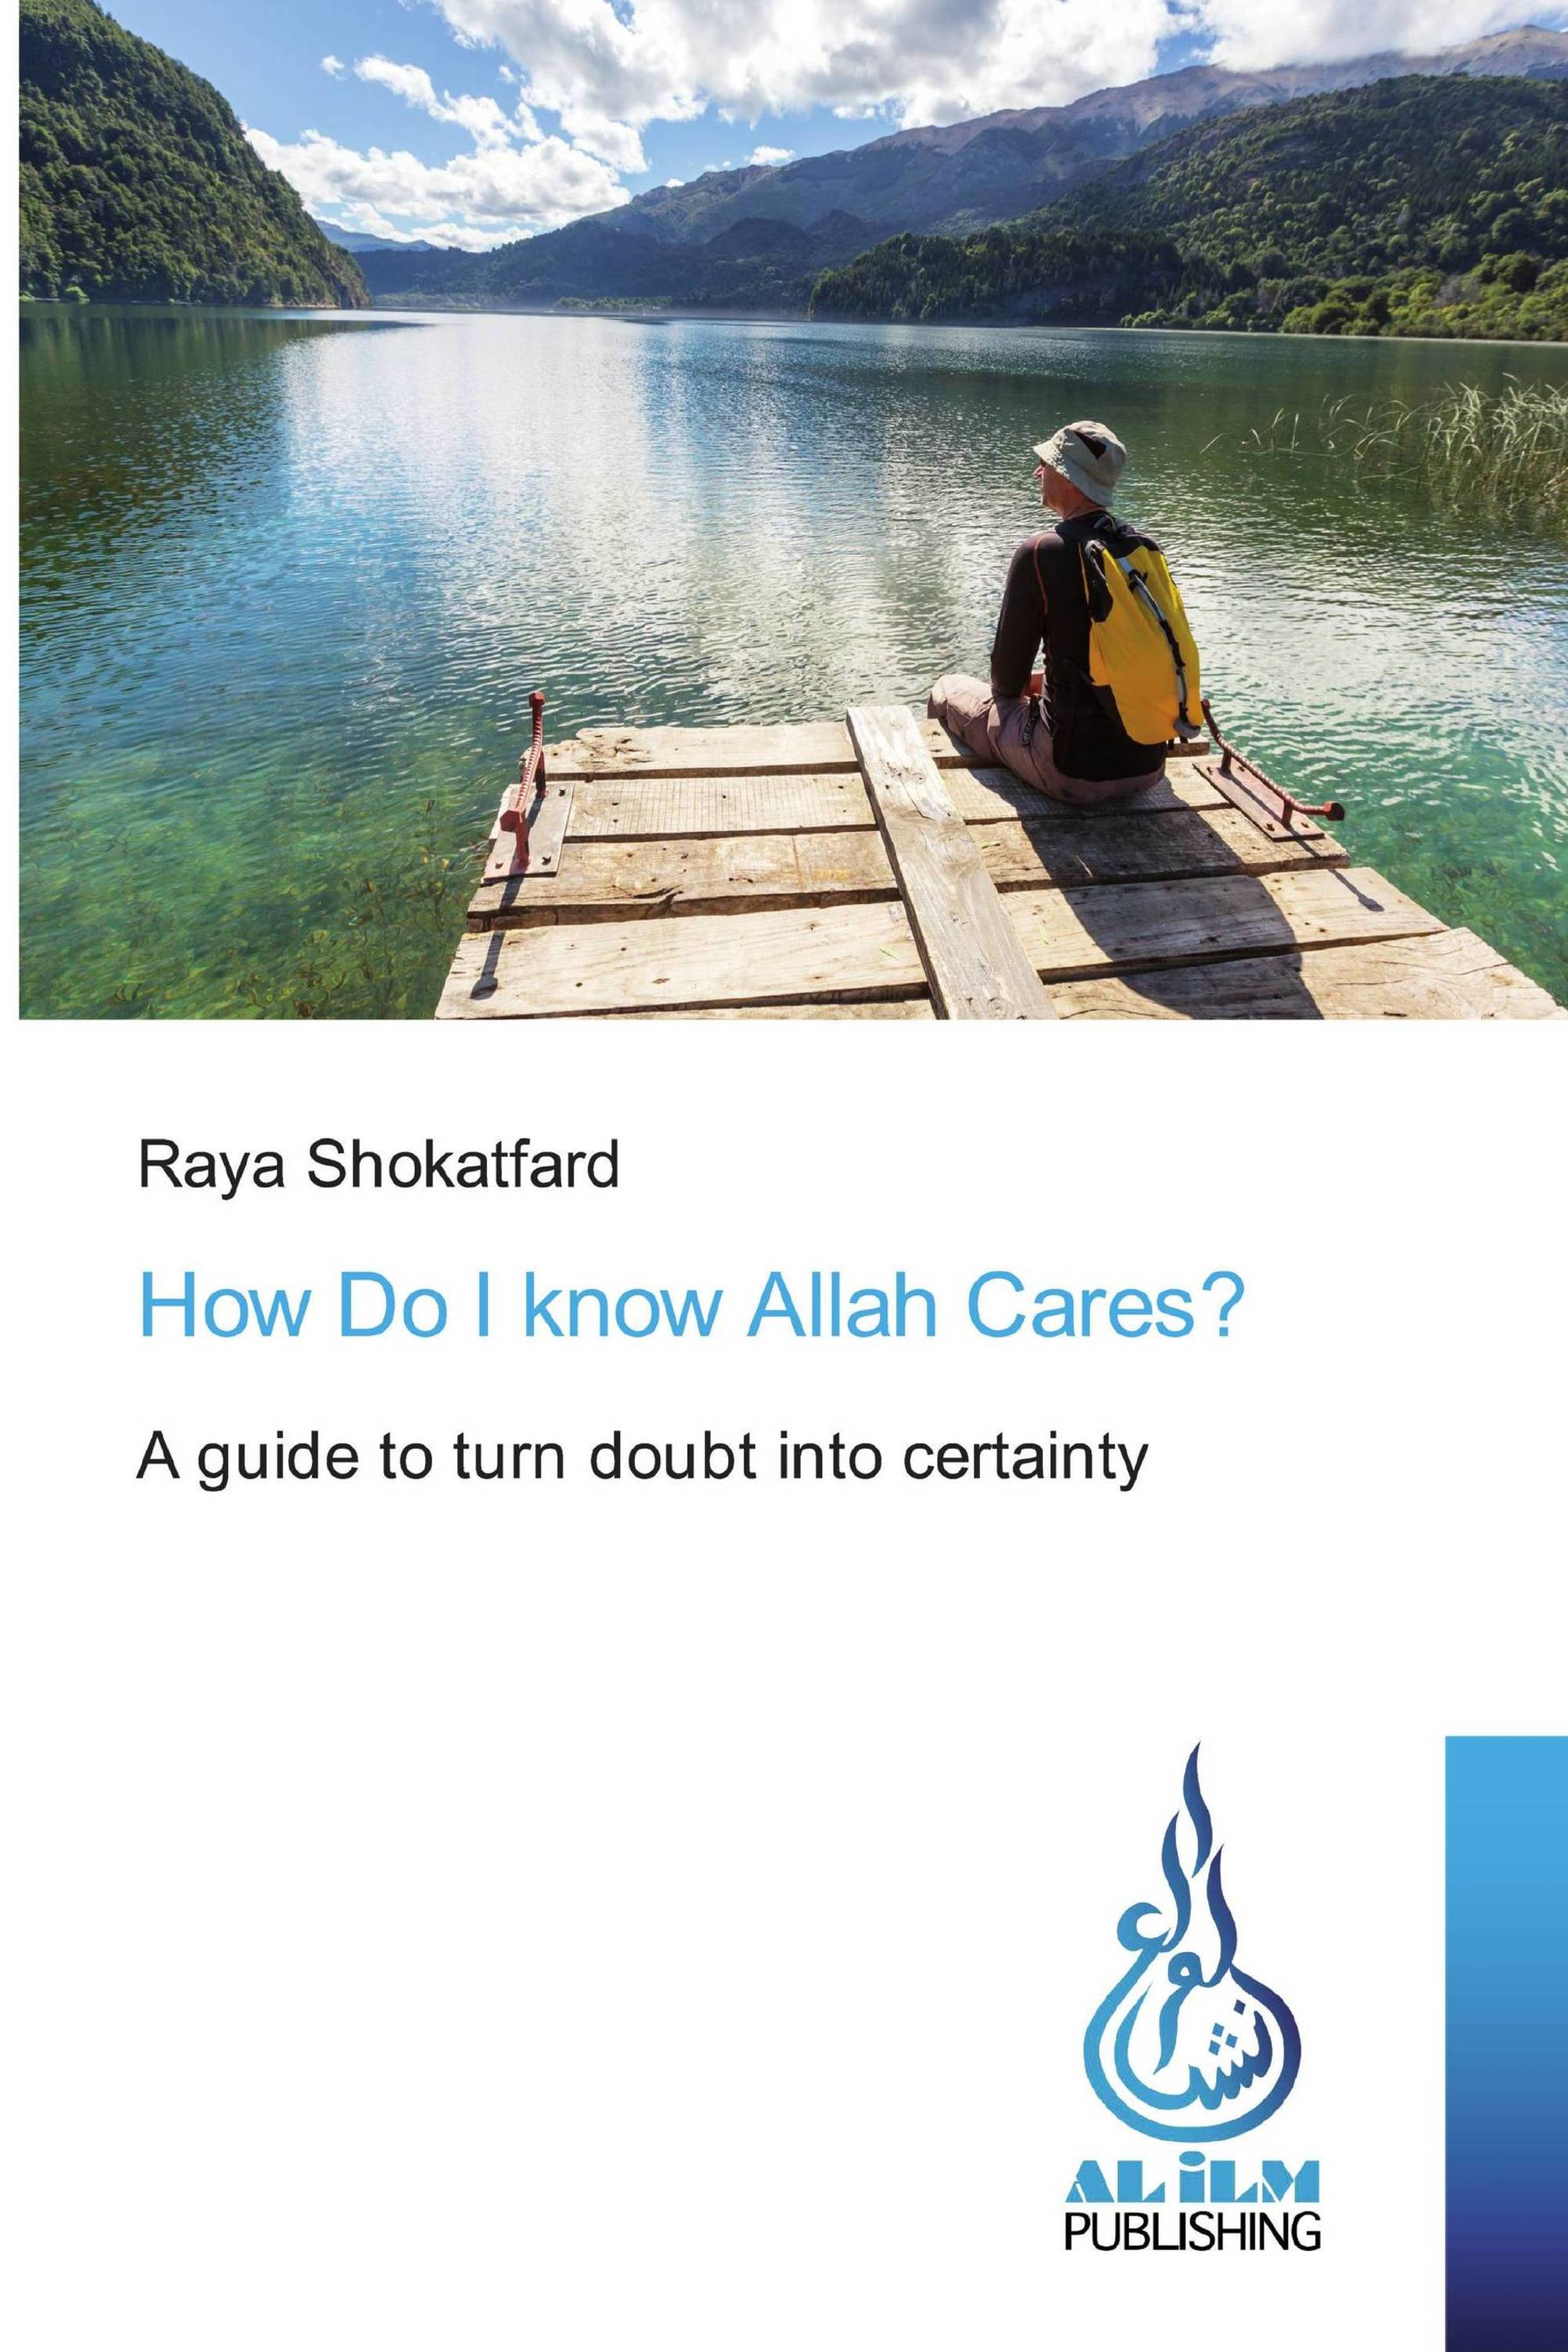 How Do I know Allah Cares?